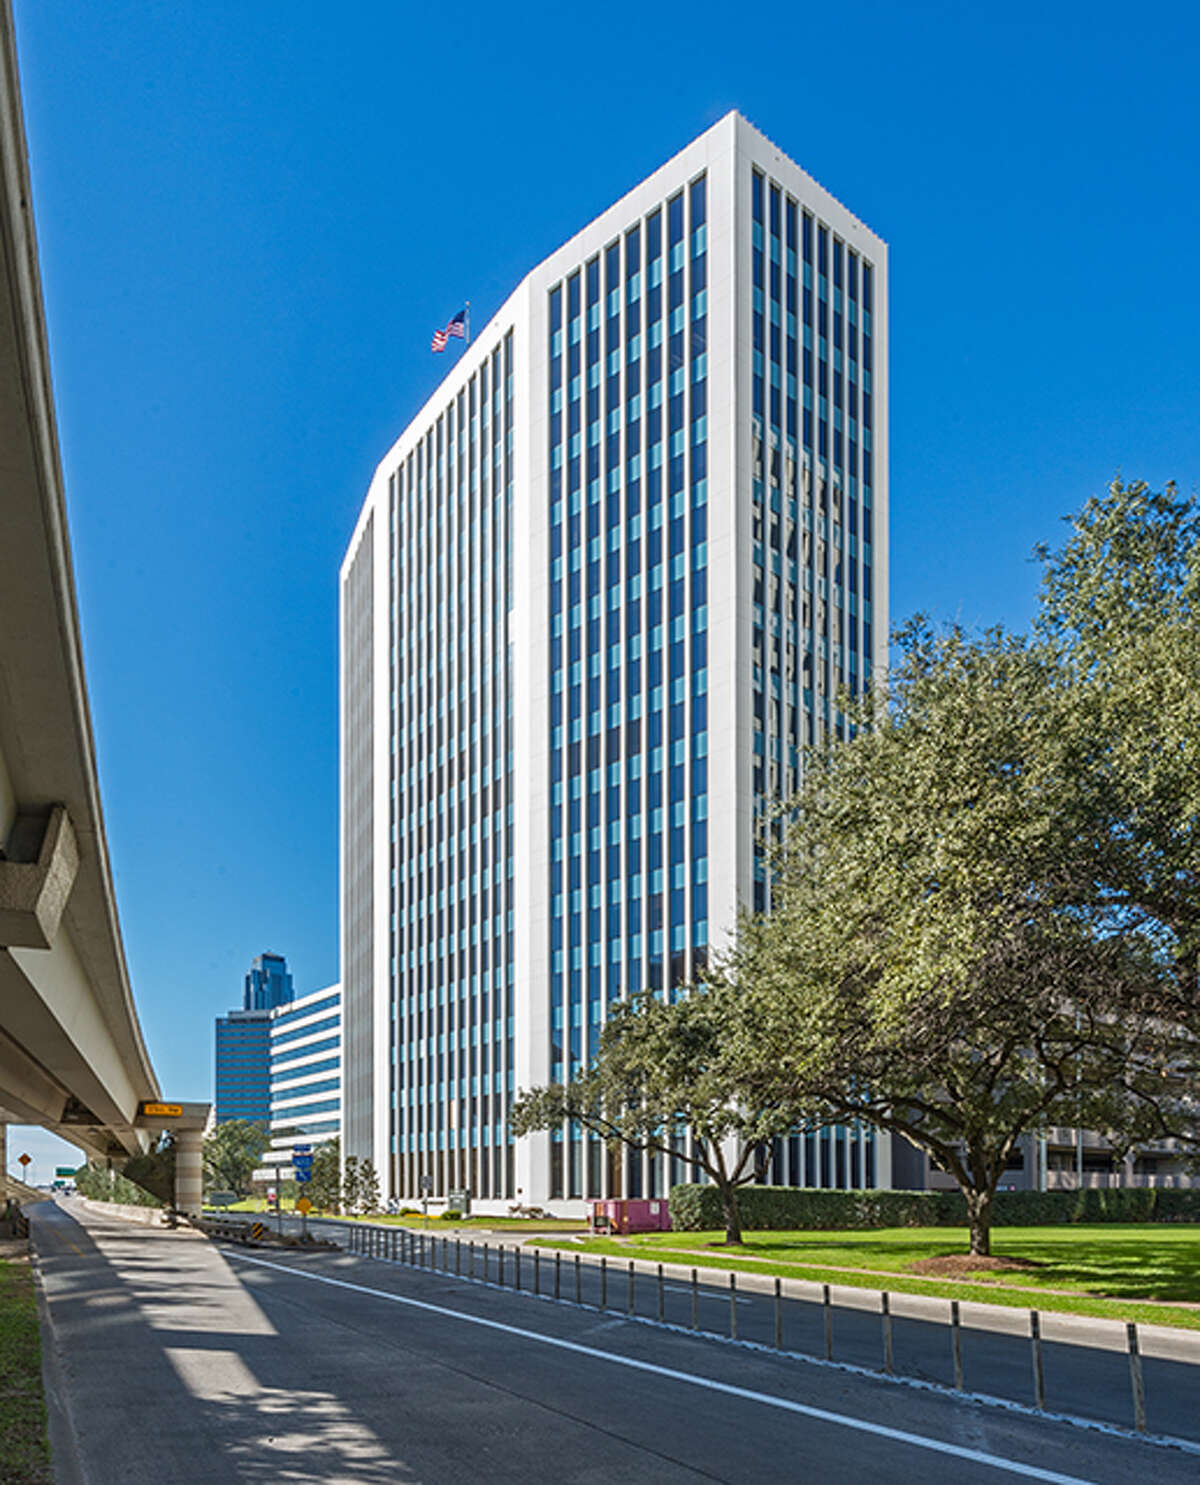 Elite Street Capital has purchased 2100 West Loop South, a 16-story building in the Galleria area, from Buchanan Street Partners.